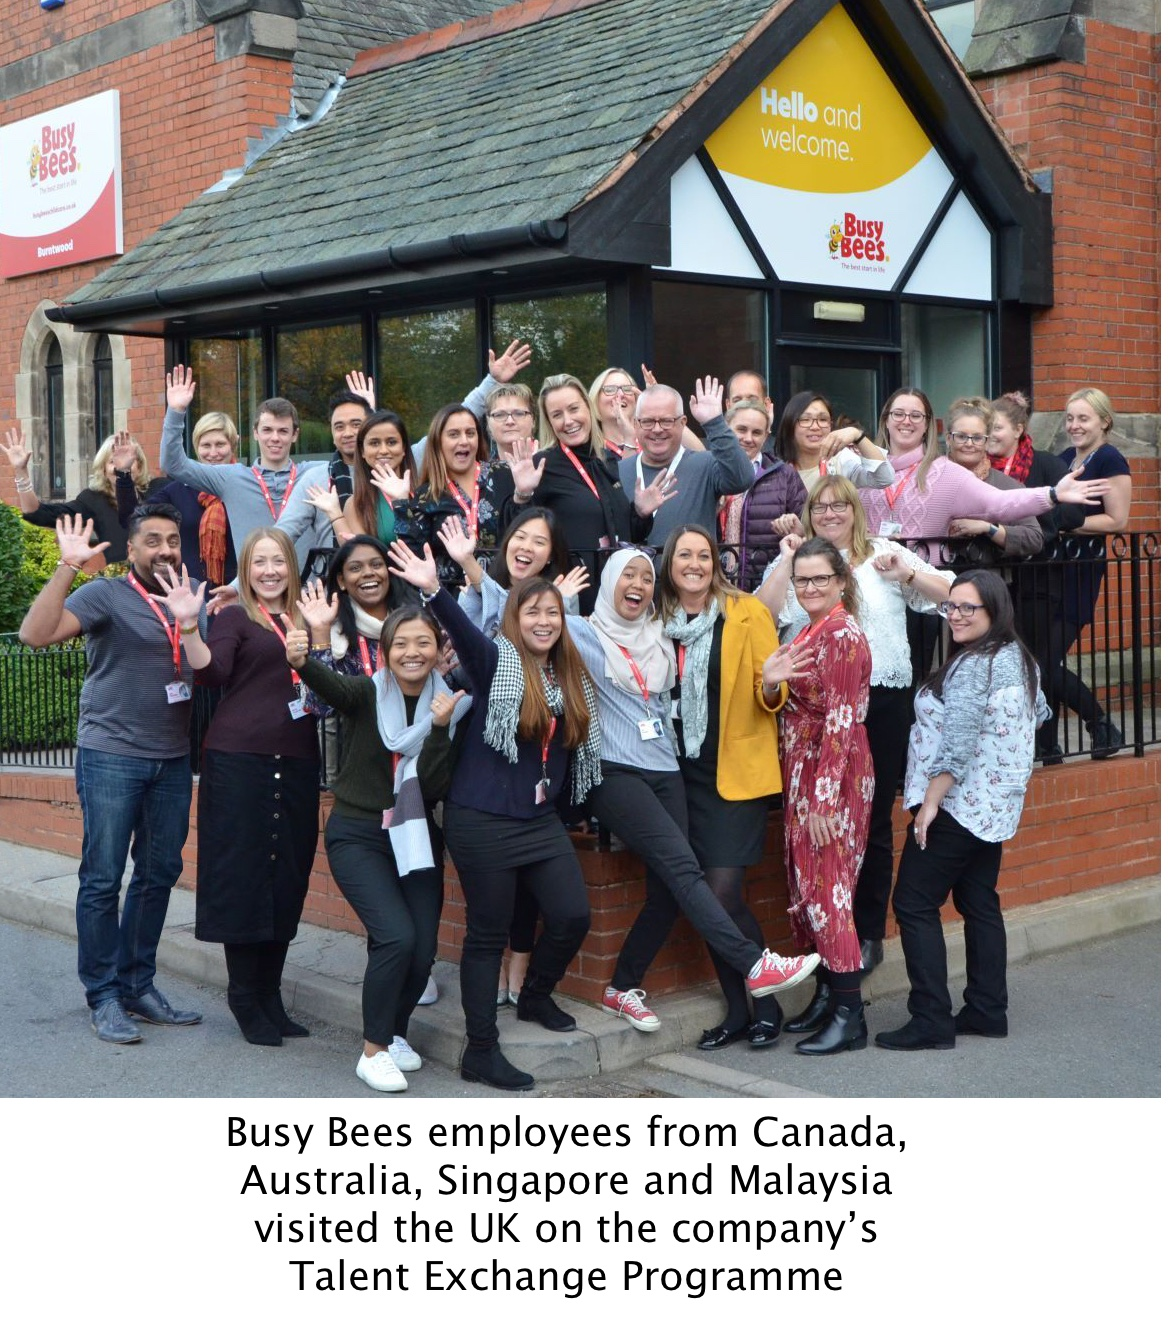 Busy Bees staff benefiting from the Talent Exchange Programme